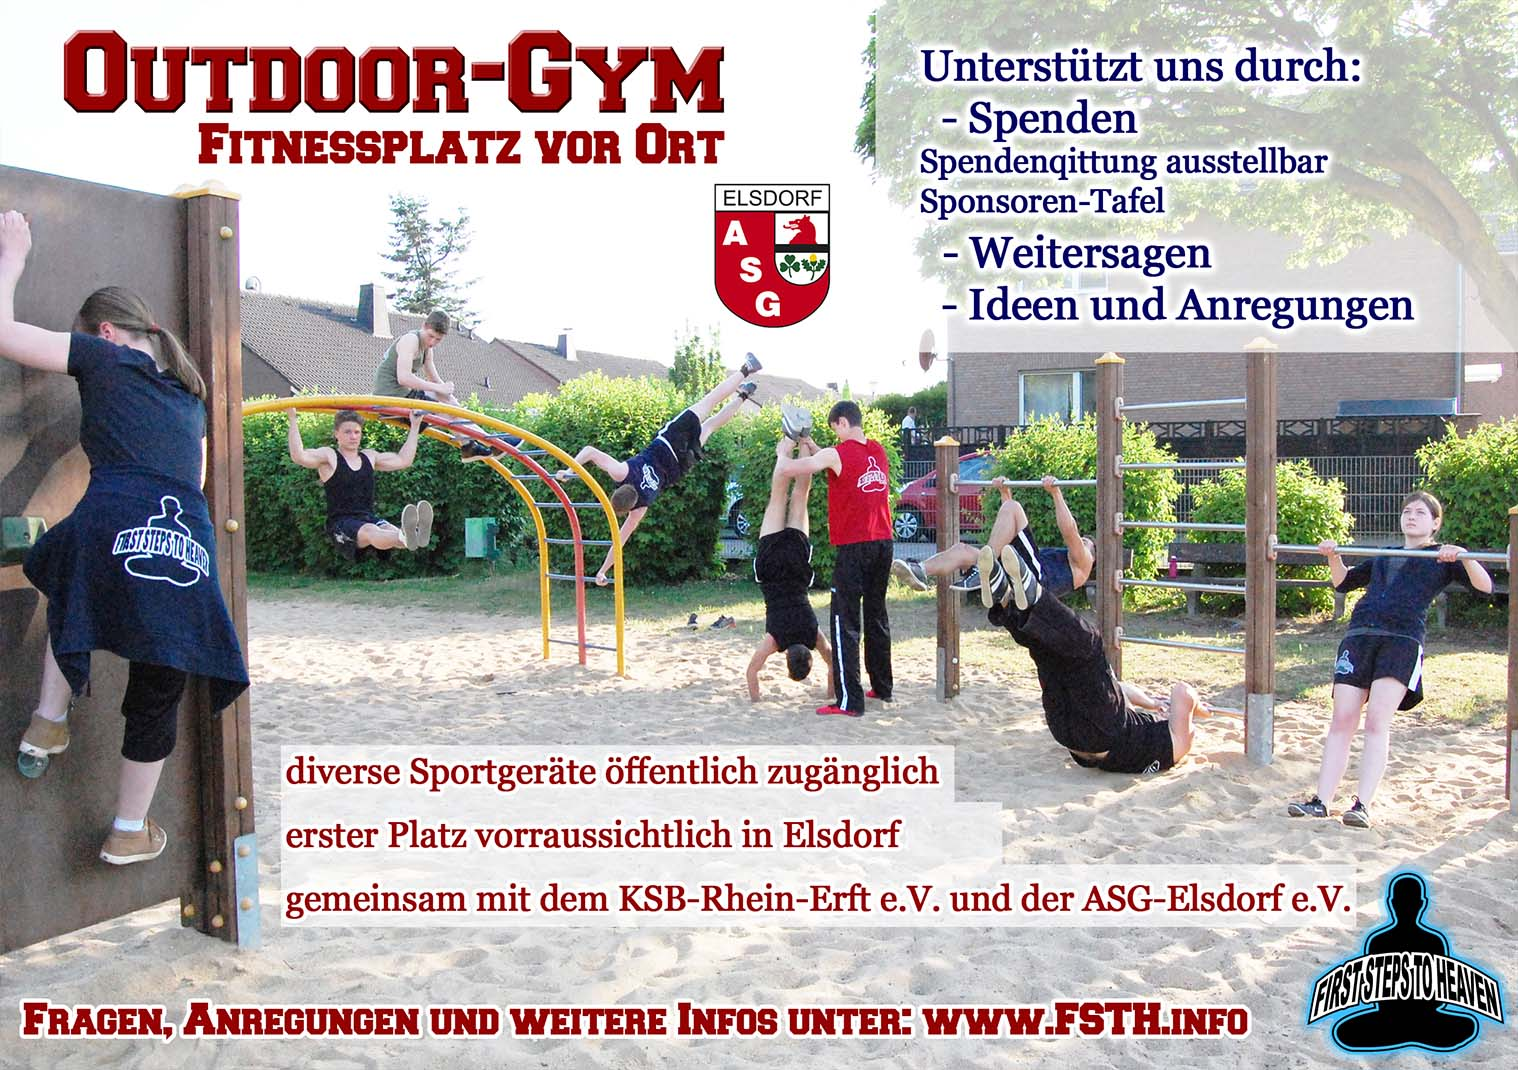 flyer-outdoor-gym1